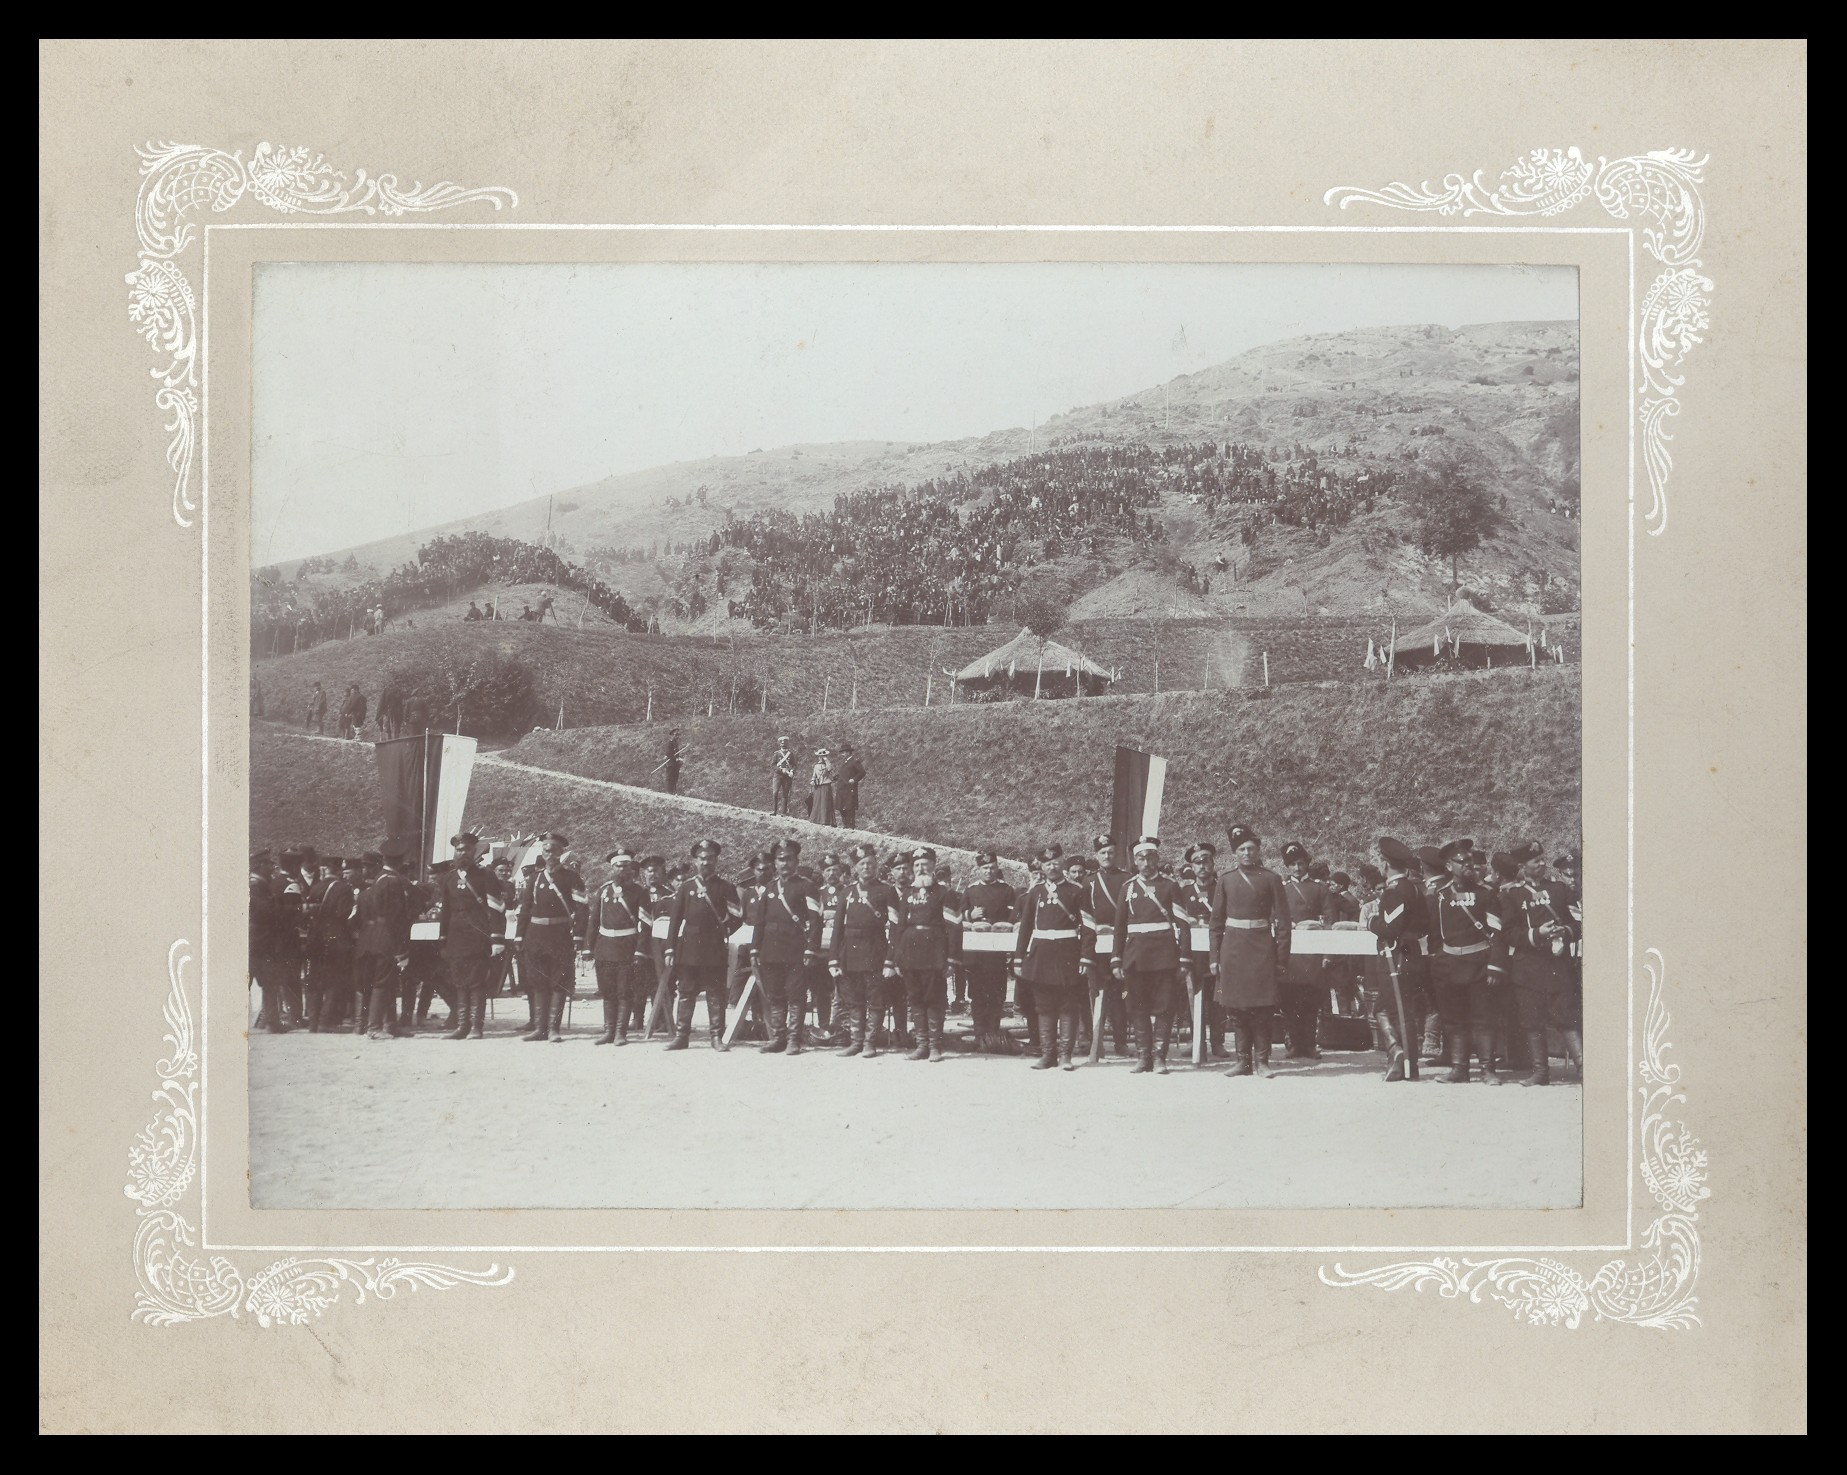 Military ceremony on Shipka peak, © National Museum of Military History Sofia